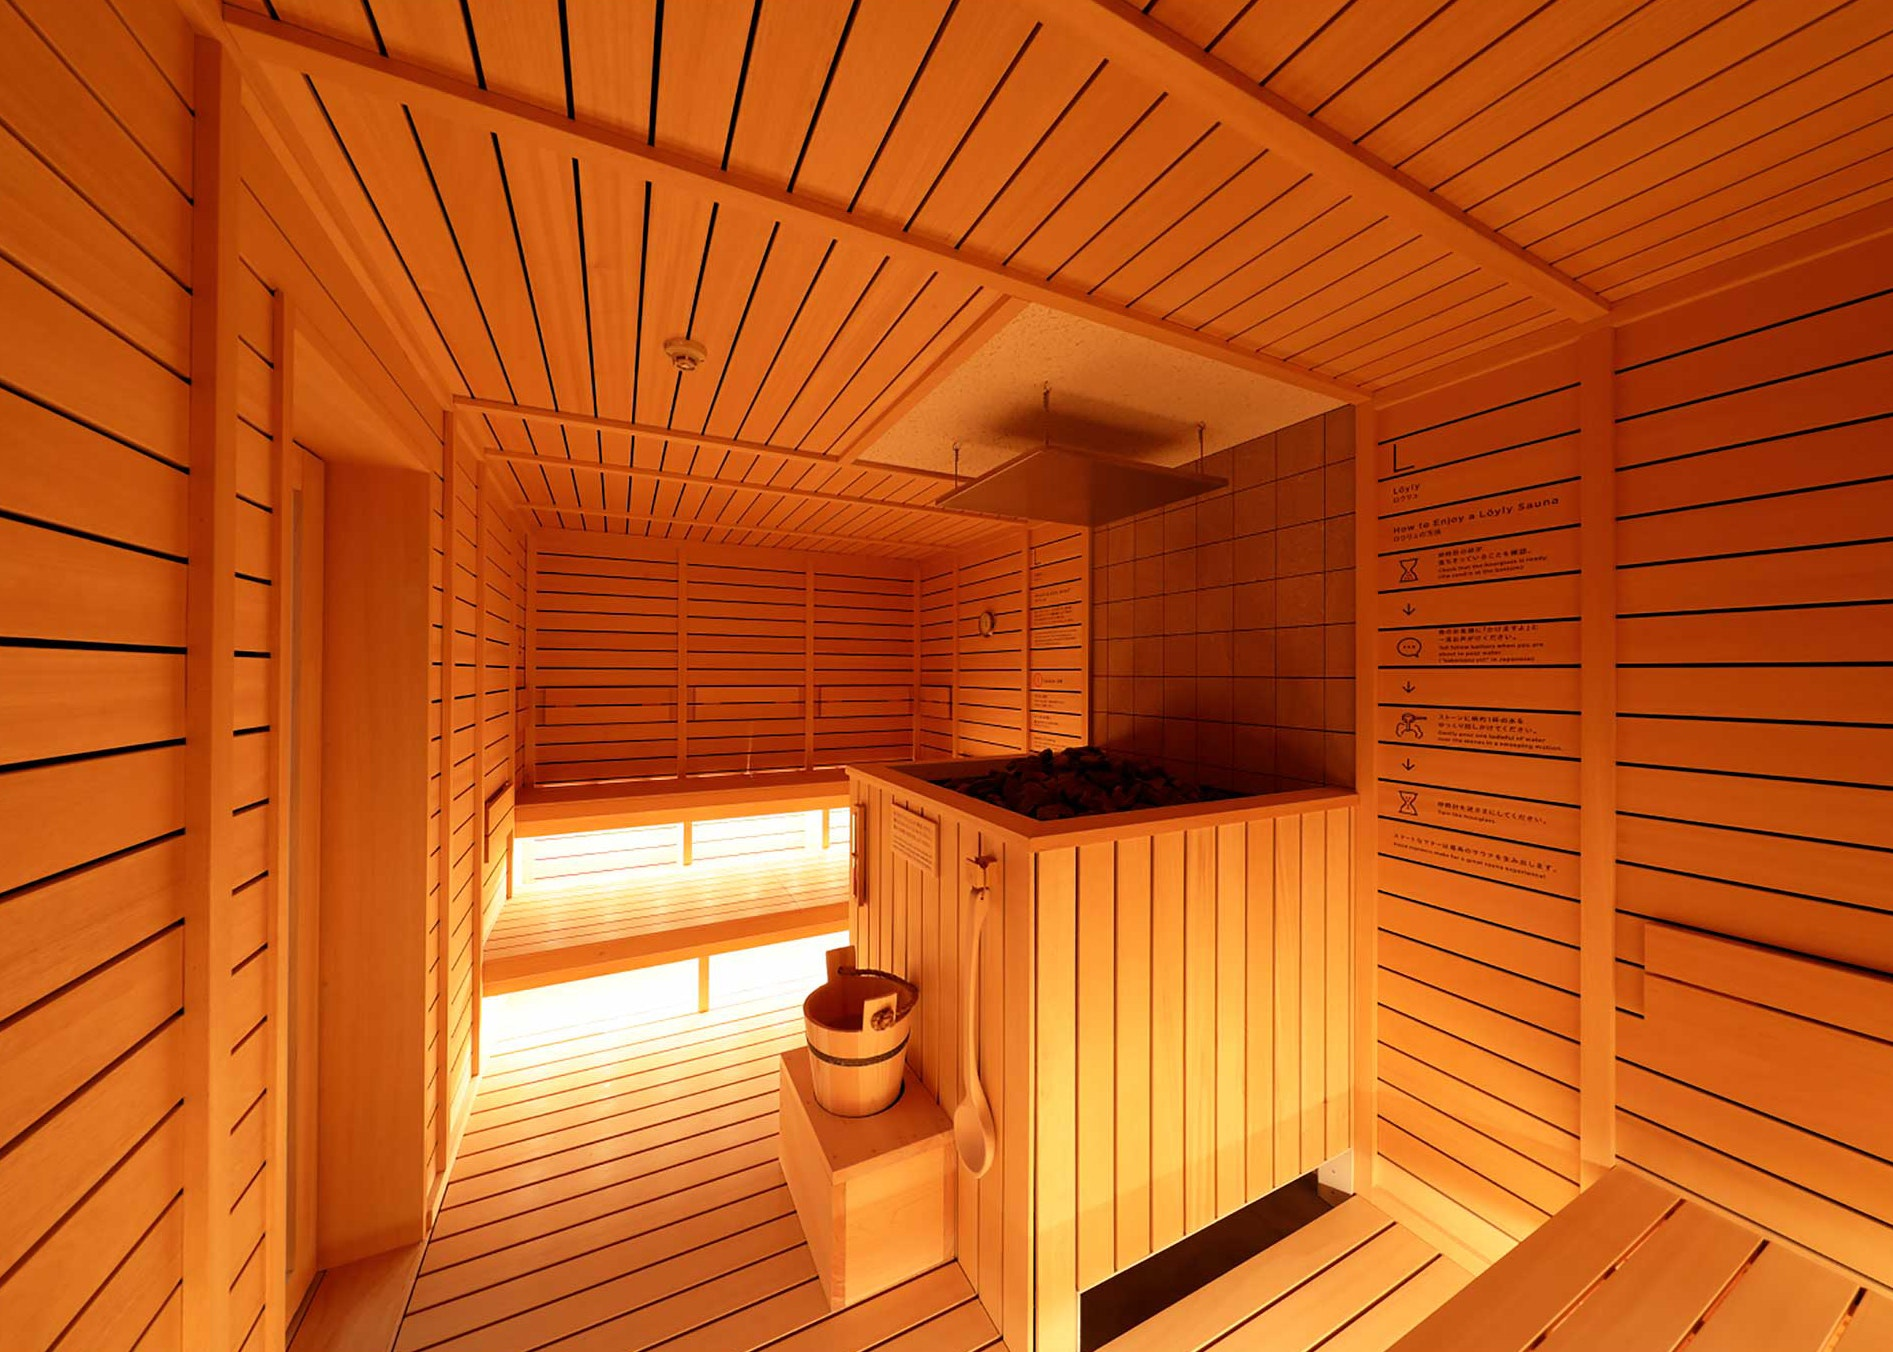 At Do-C, saunas are available for use any time between 1 p.m. and 10 a.m.